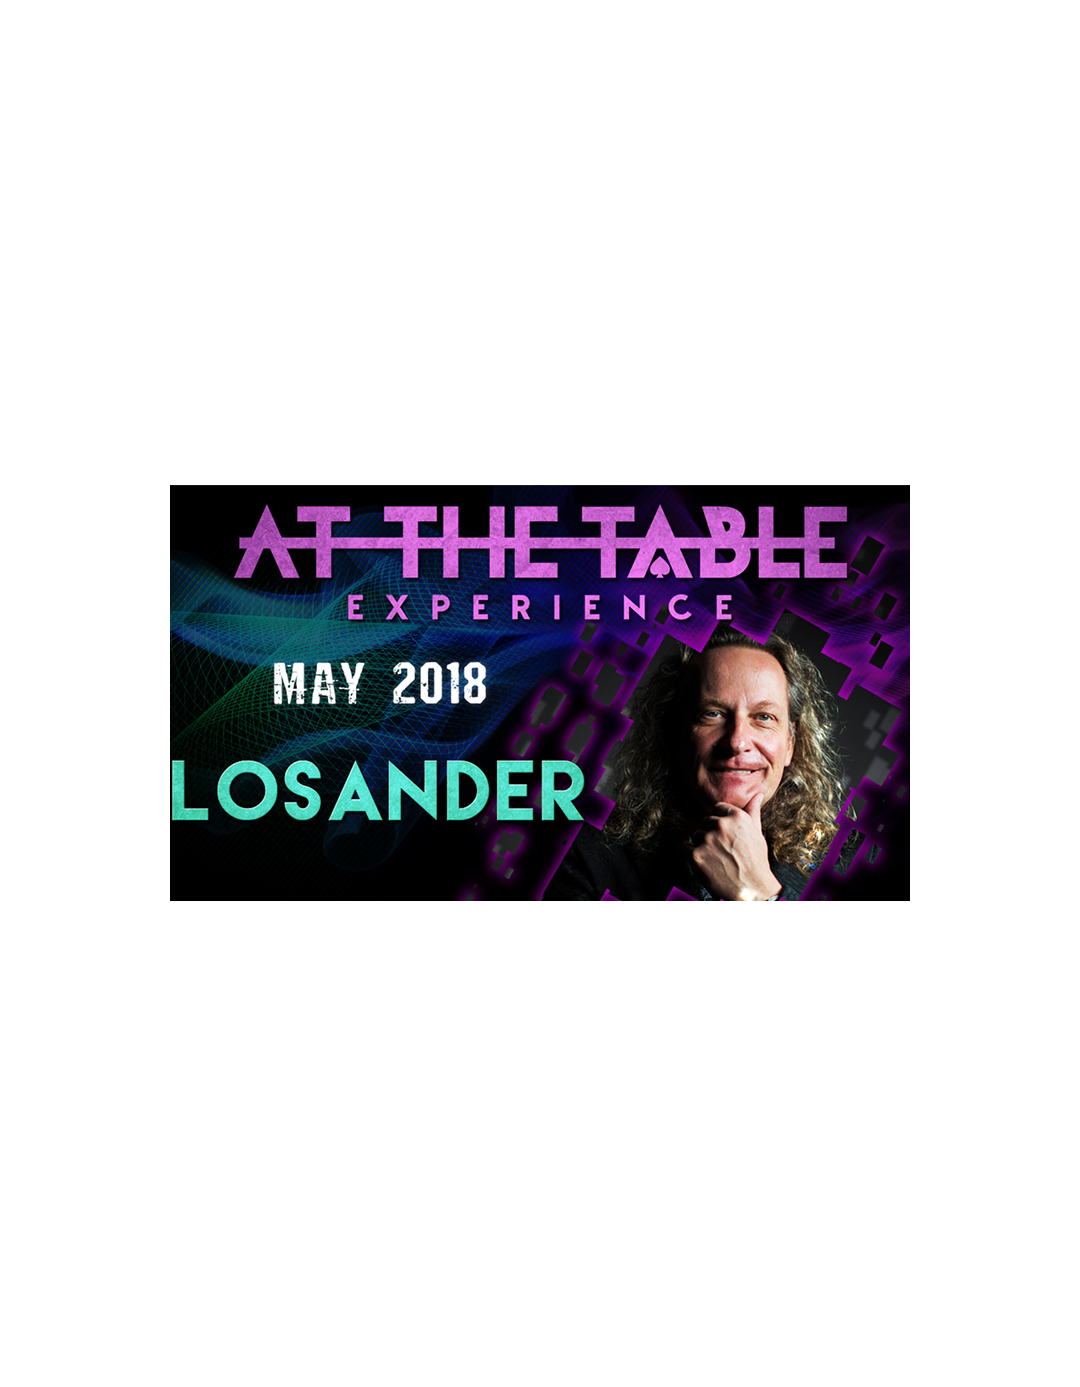 At The Table Live Losander 2 Mai 2018 - At the table lecture